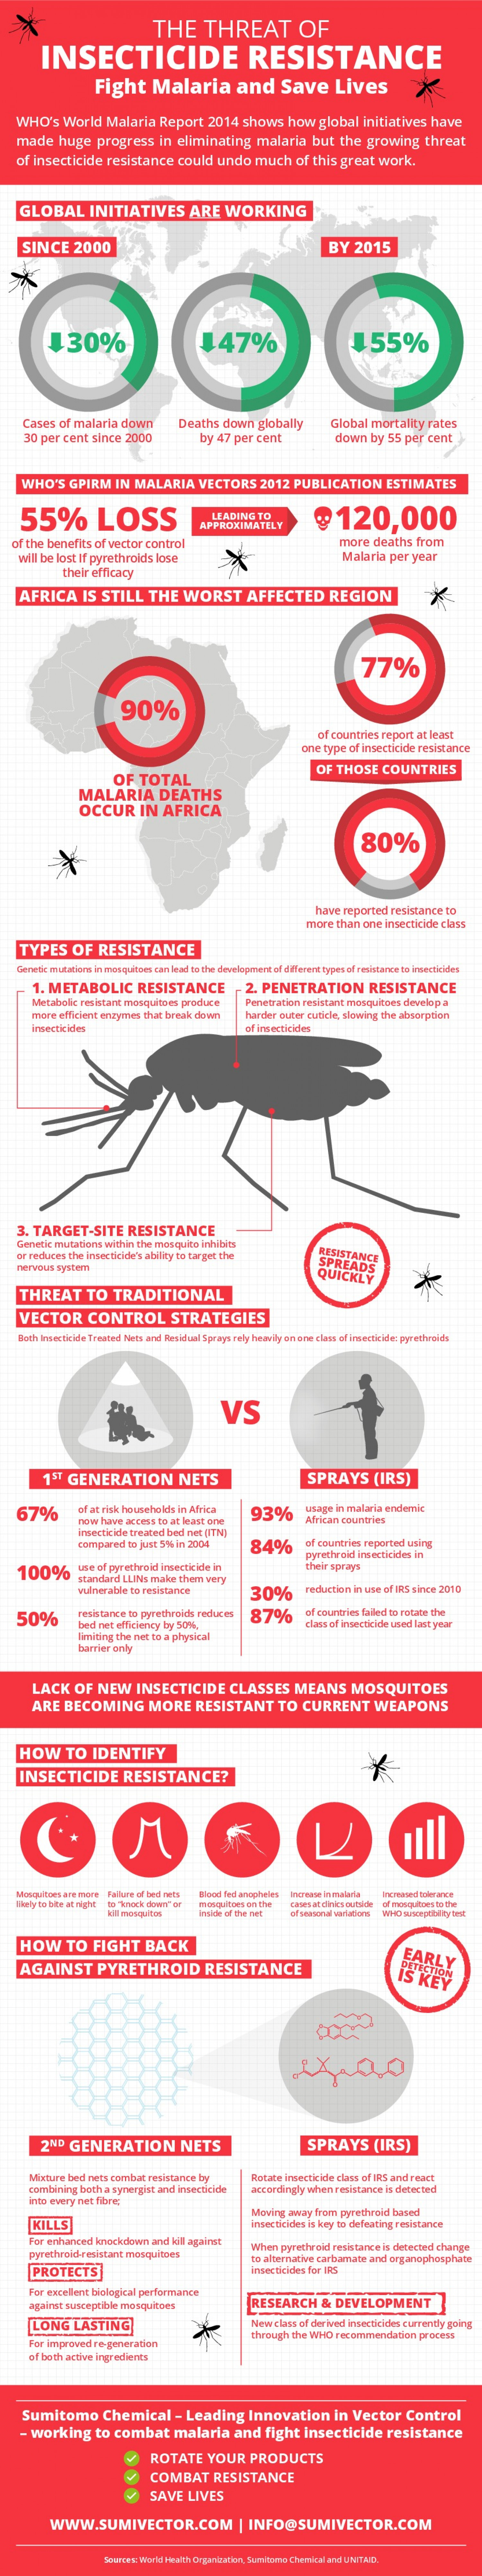 The Threat of Insecticide Resistance Infographic Infographic